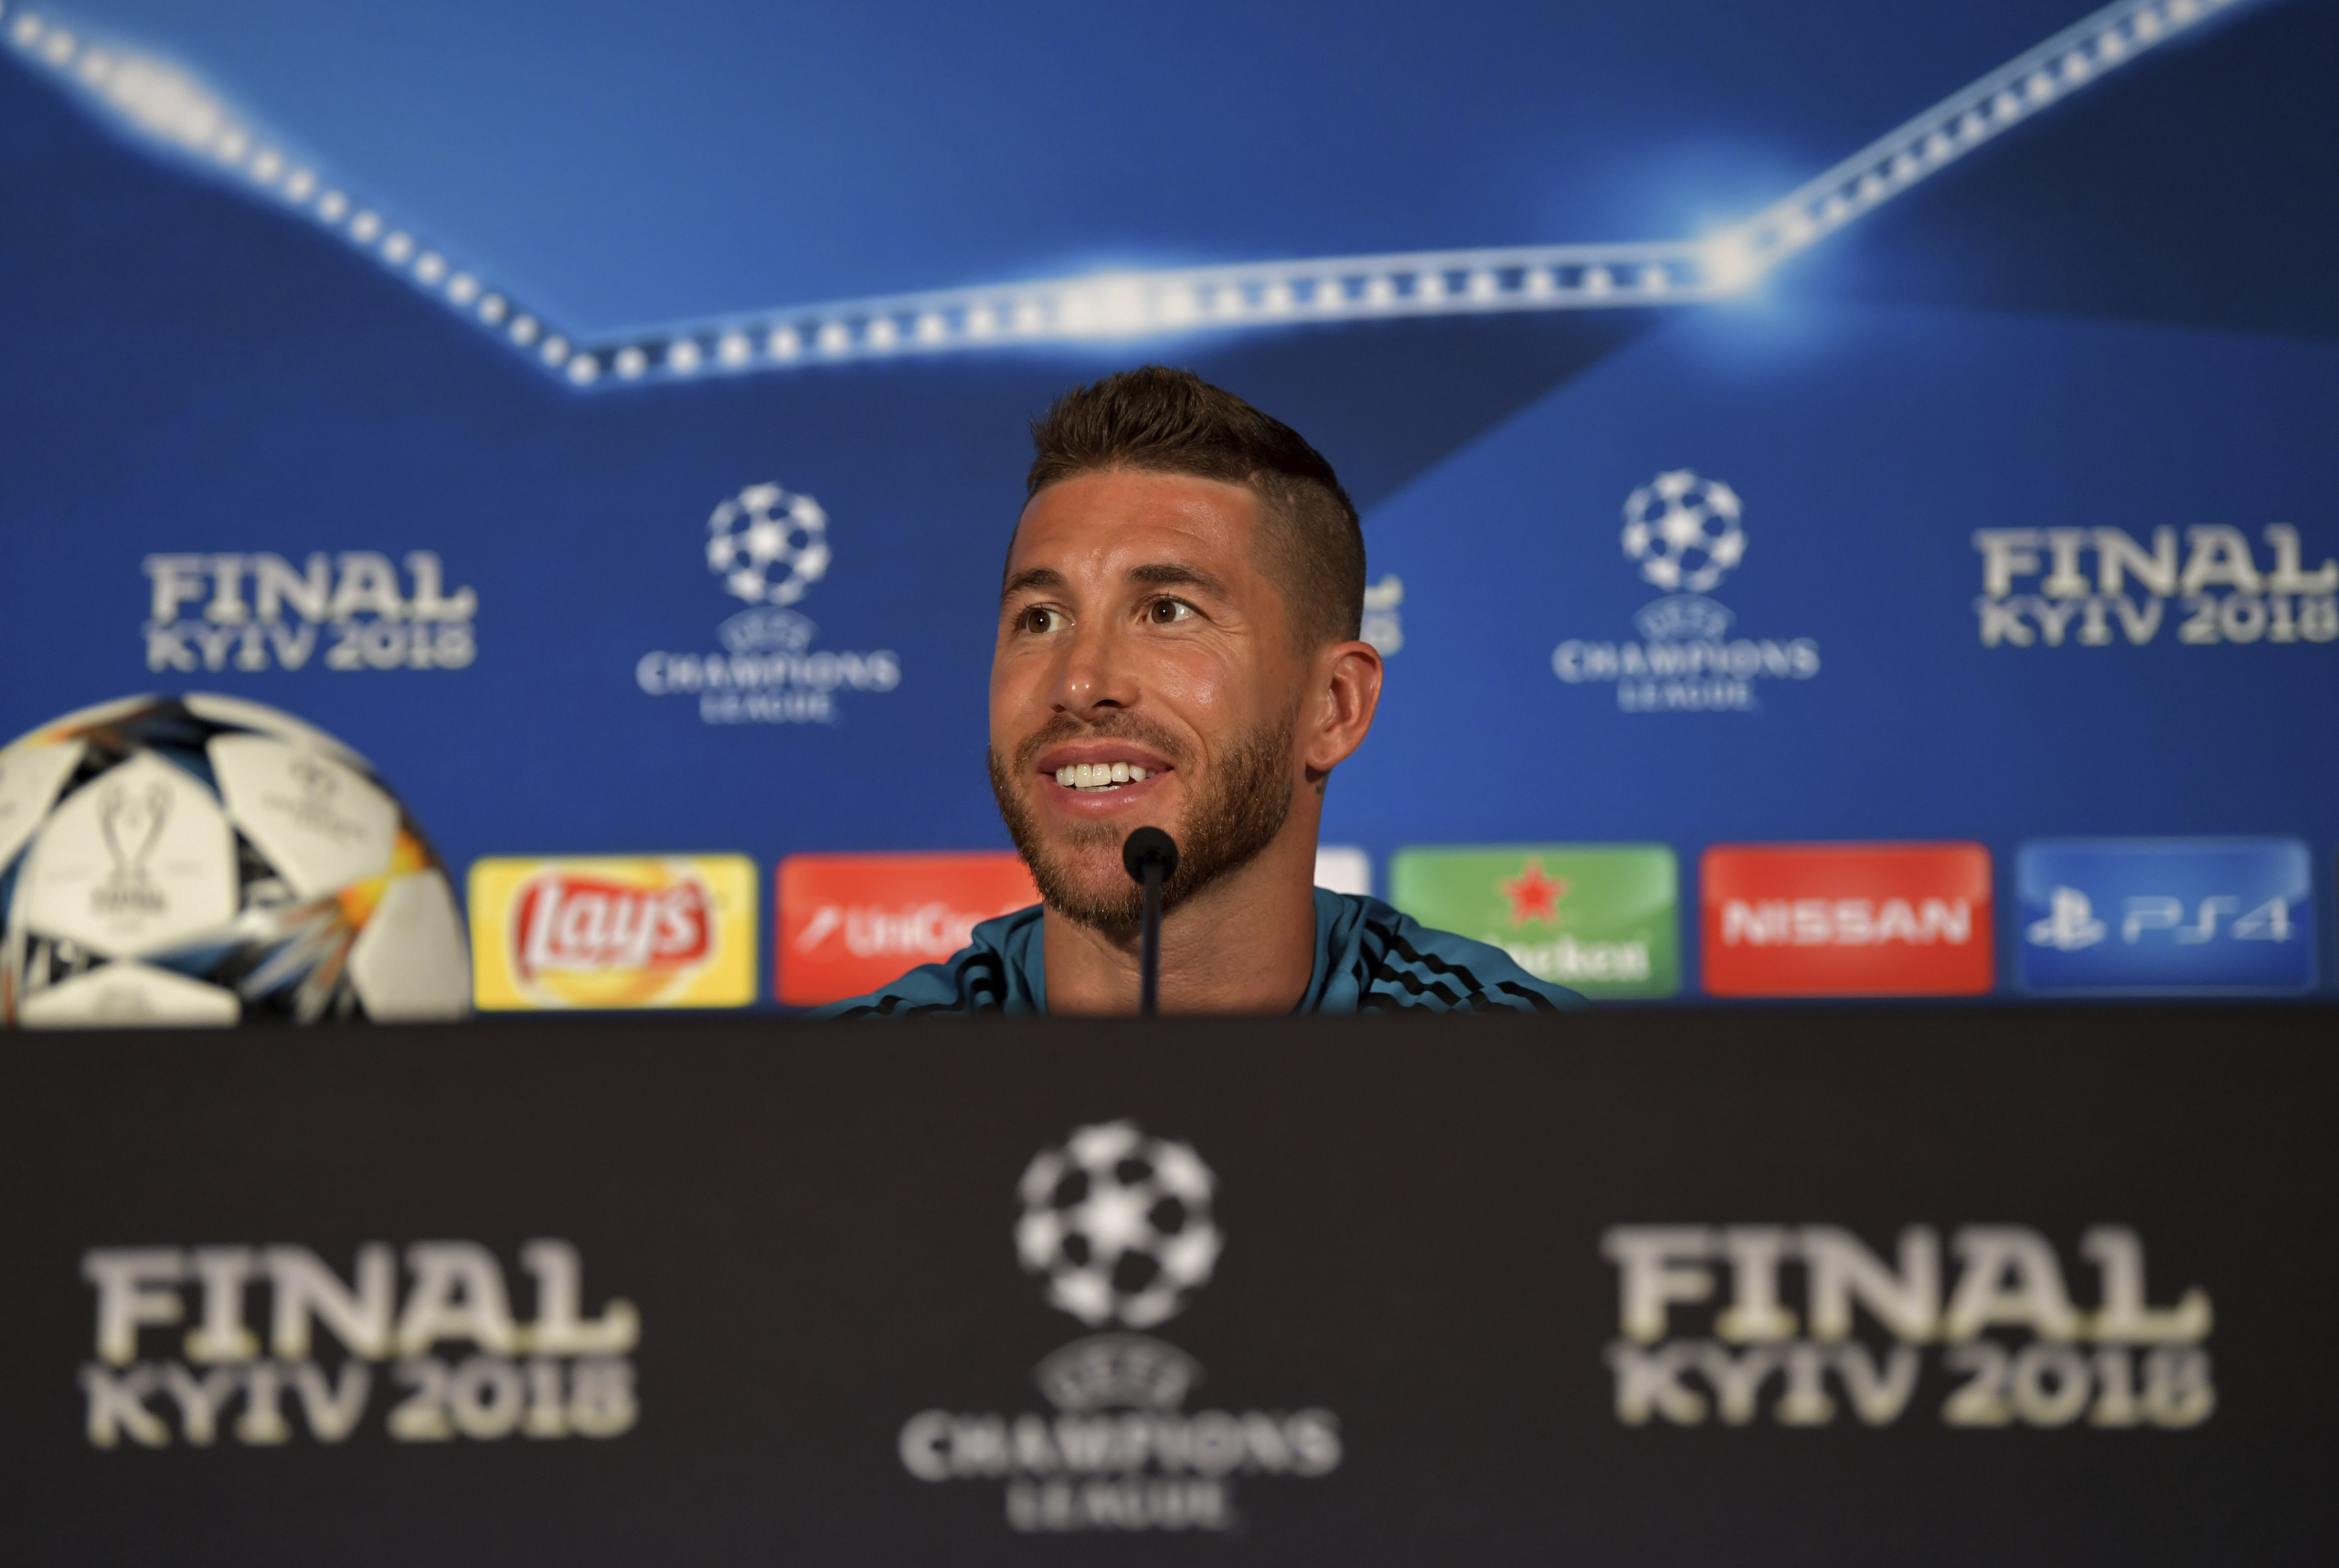 Real Madrid Press Conference- UEFA Champions League Final Previews